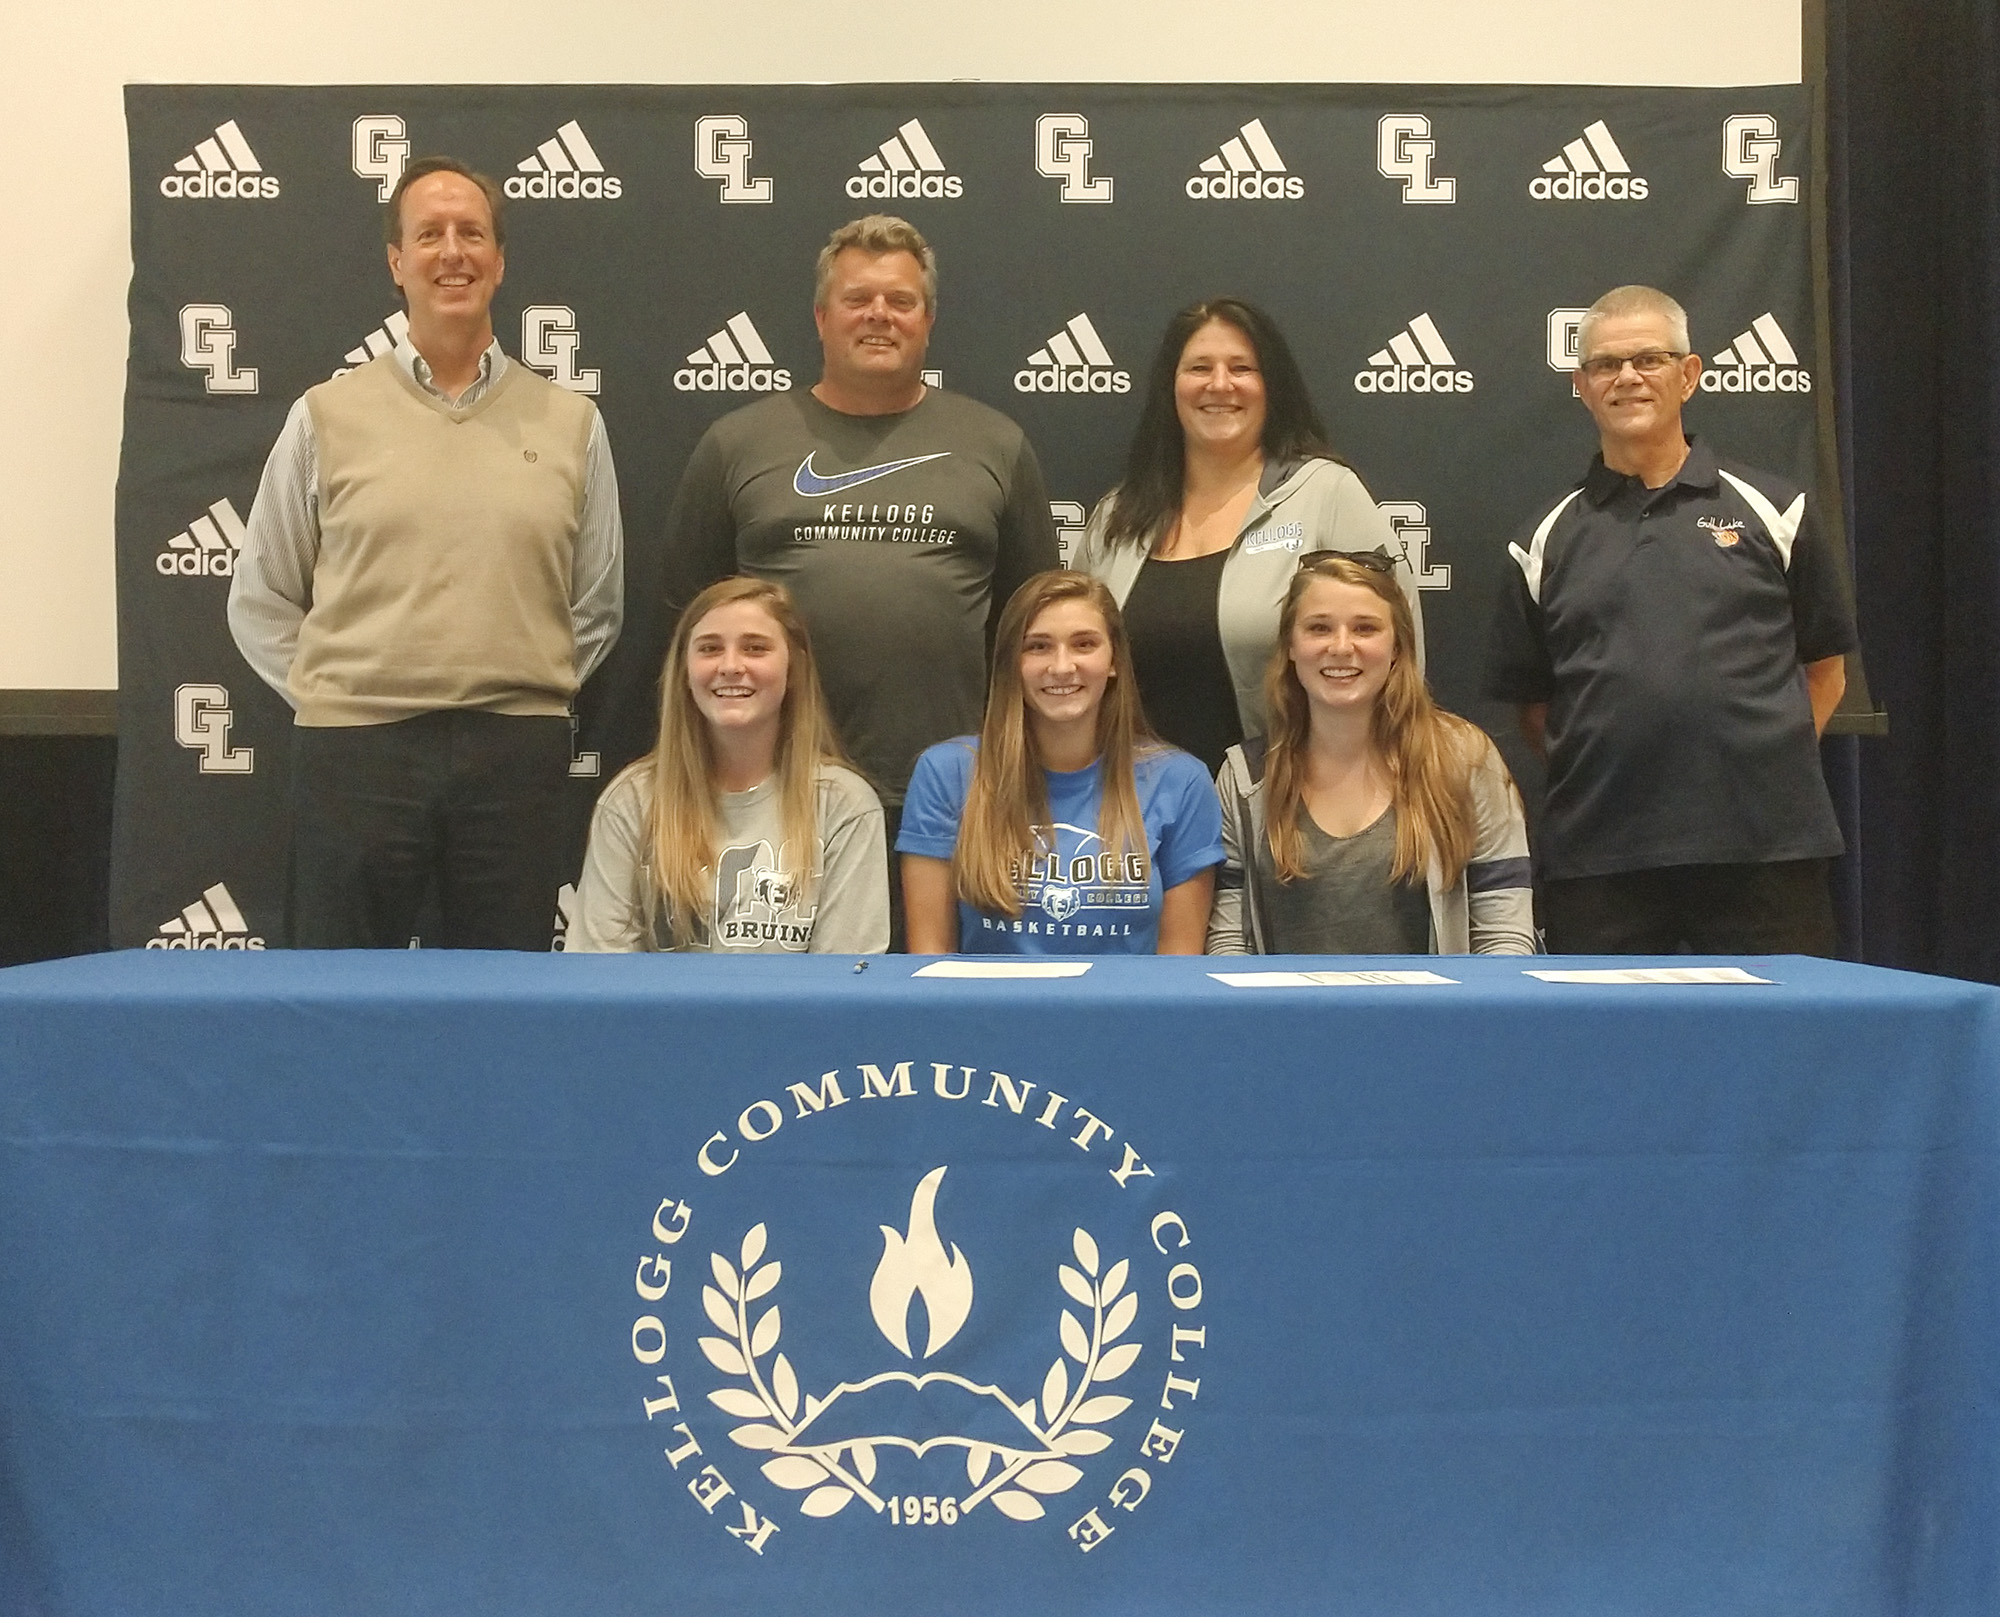 Pictured, in the front row, from left to right, are Anna DeWaters (sister), Audrey DeWaters and Emily DeWaters (sister). In the back row, from left to right, are KCC's Head Women's Basketball Coach Dic Doumanian, Todd DeWaters (father), Rhonda DeWaters (mother) and Gull Lake High School's Head Varsity Girls Basketball Coach Mike Balcom.